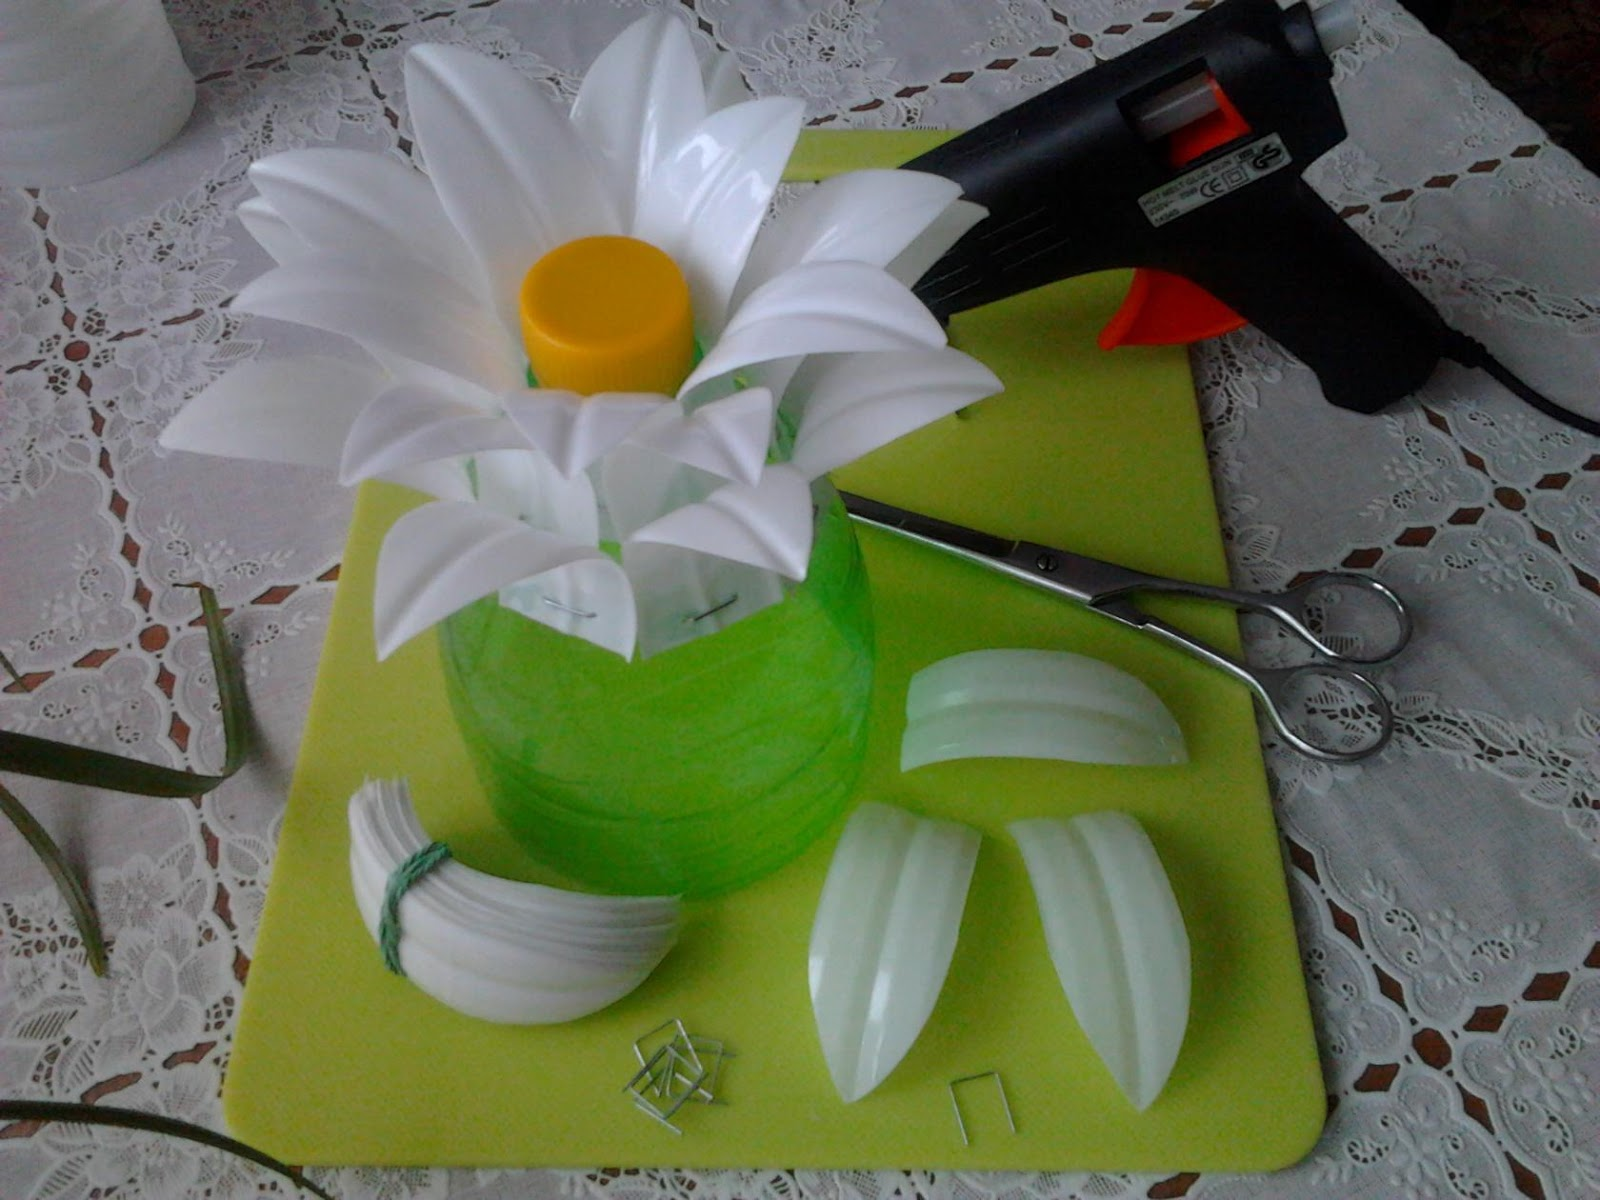 flower vase gl with Eoi64g on Watch also 00210016005bk likewise 720500410019 further 004100010032 besides Dollar Store Wedding Centerpieces.